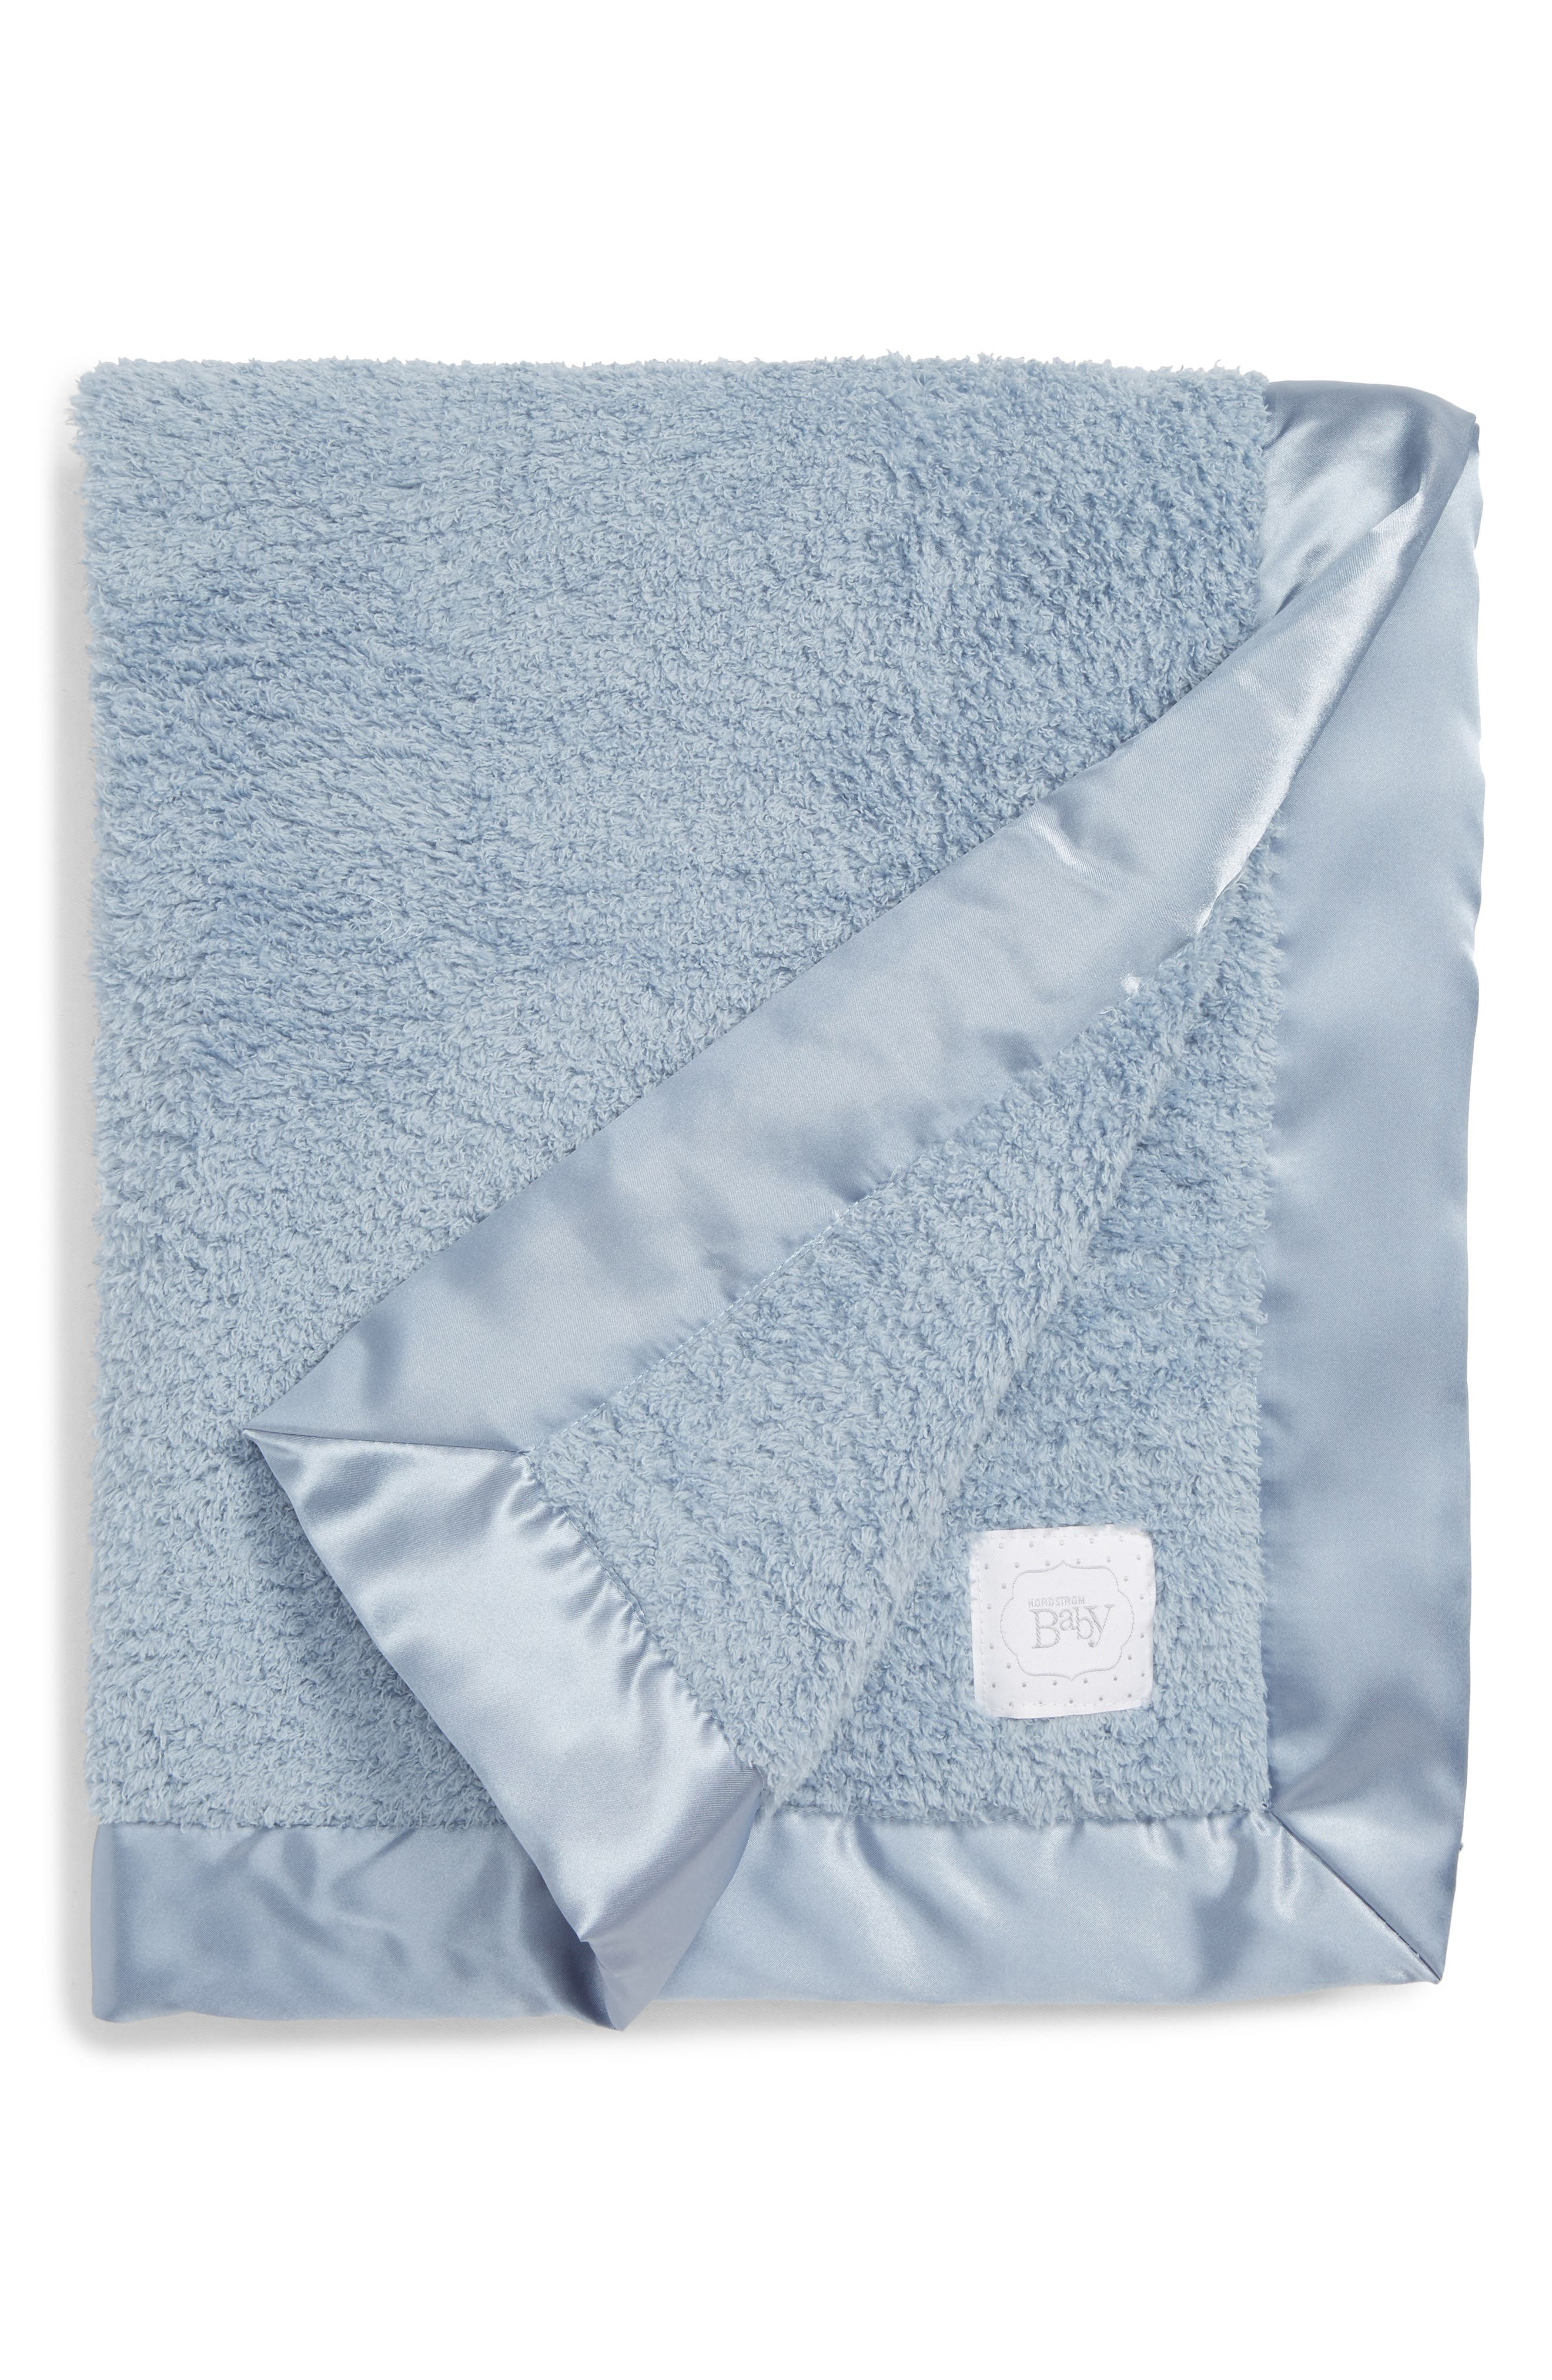 Luxe Chenille Blanket,                             Main thumbnail 1, color,                             Blue Drizzle